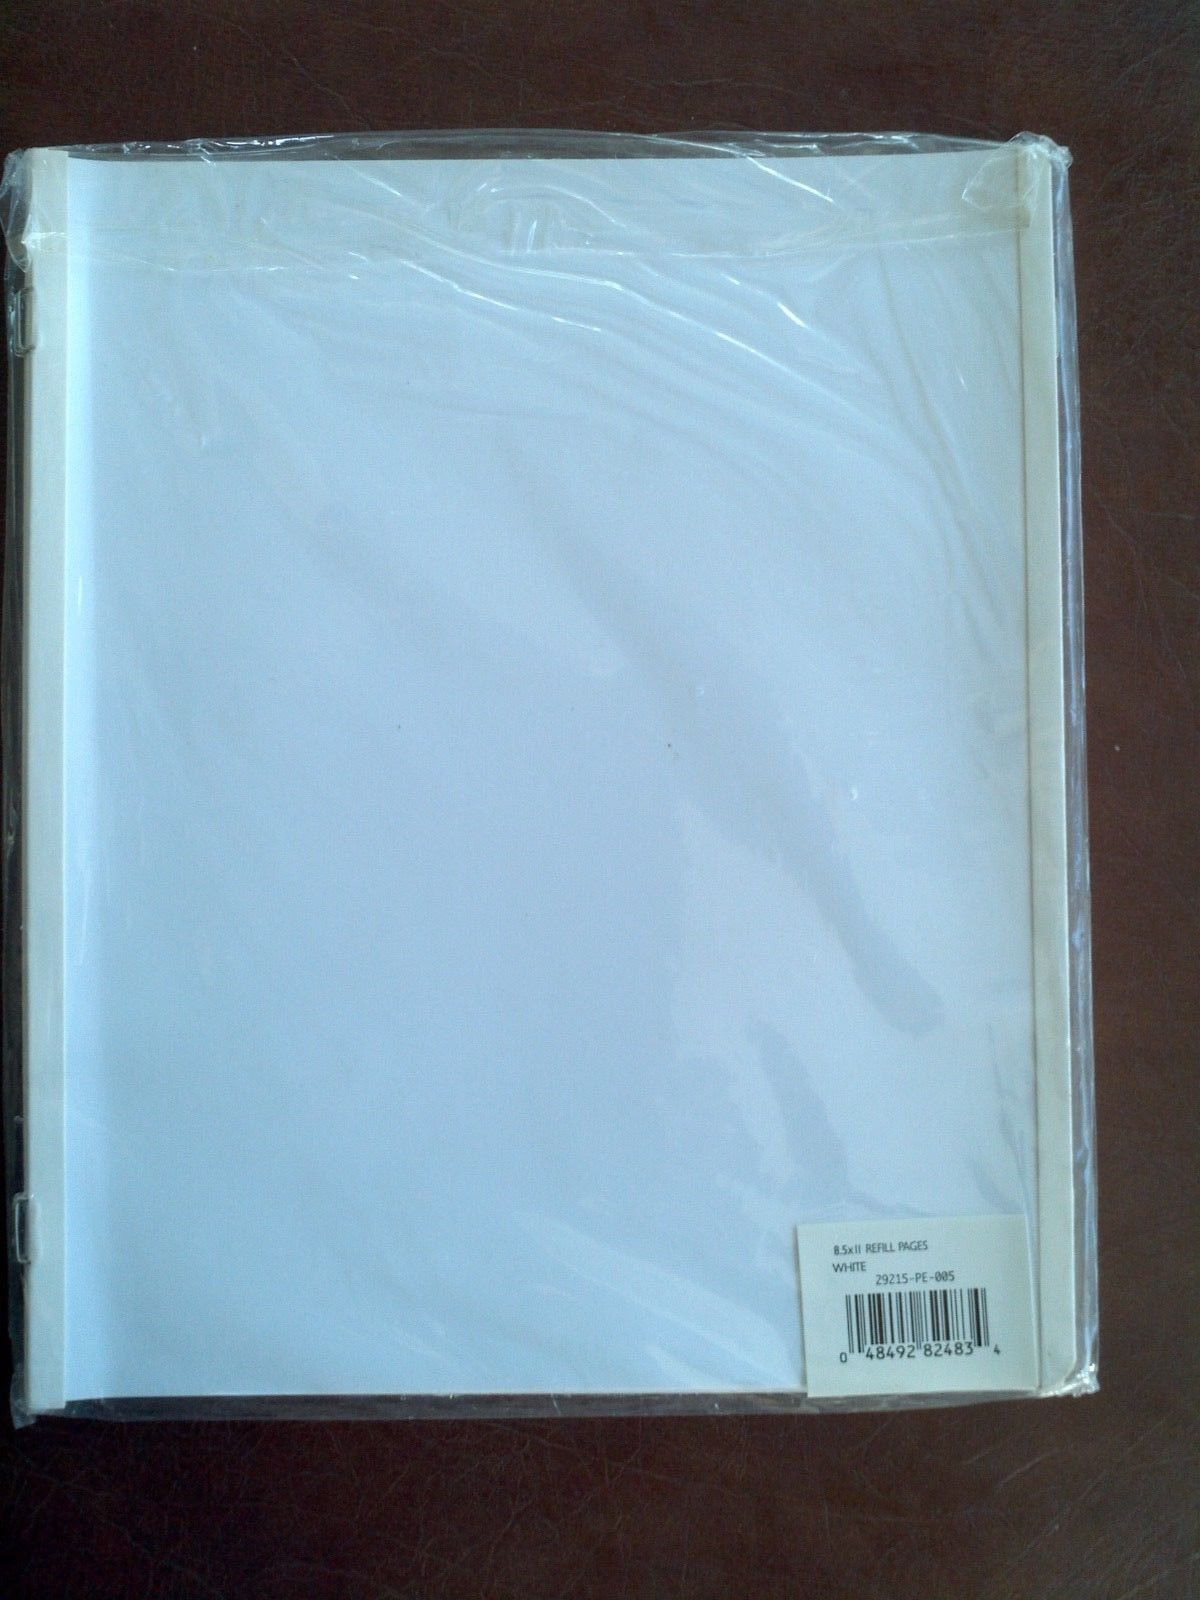 Westrim Crafts 8.5x11 White Scrapbook Refill Pages Package of 10 #29215